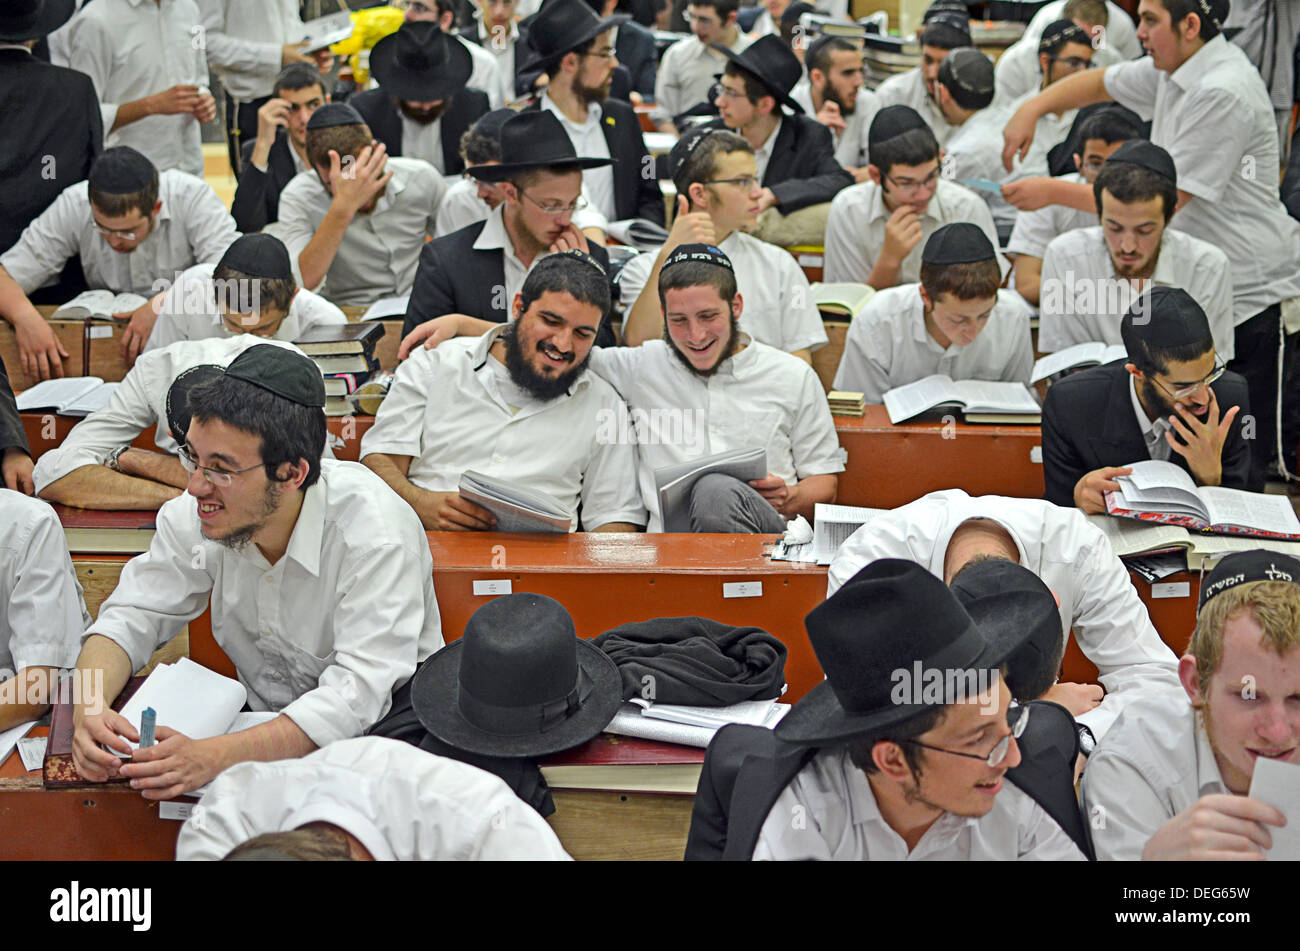 Orthodox Jewish boys studying and praying at Lubavitch headquarters in the Crown Heights section of  Brooklyn, New - Stock Image